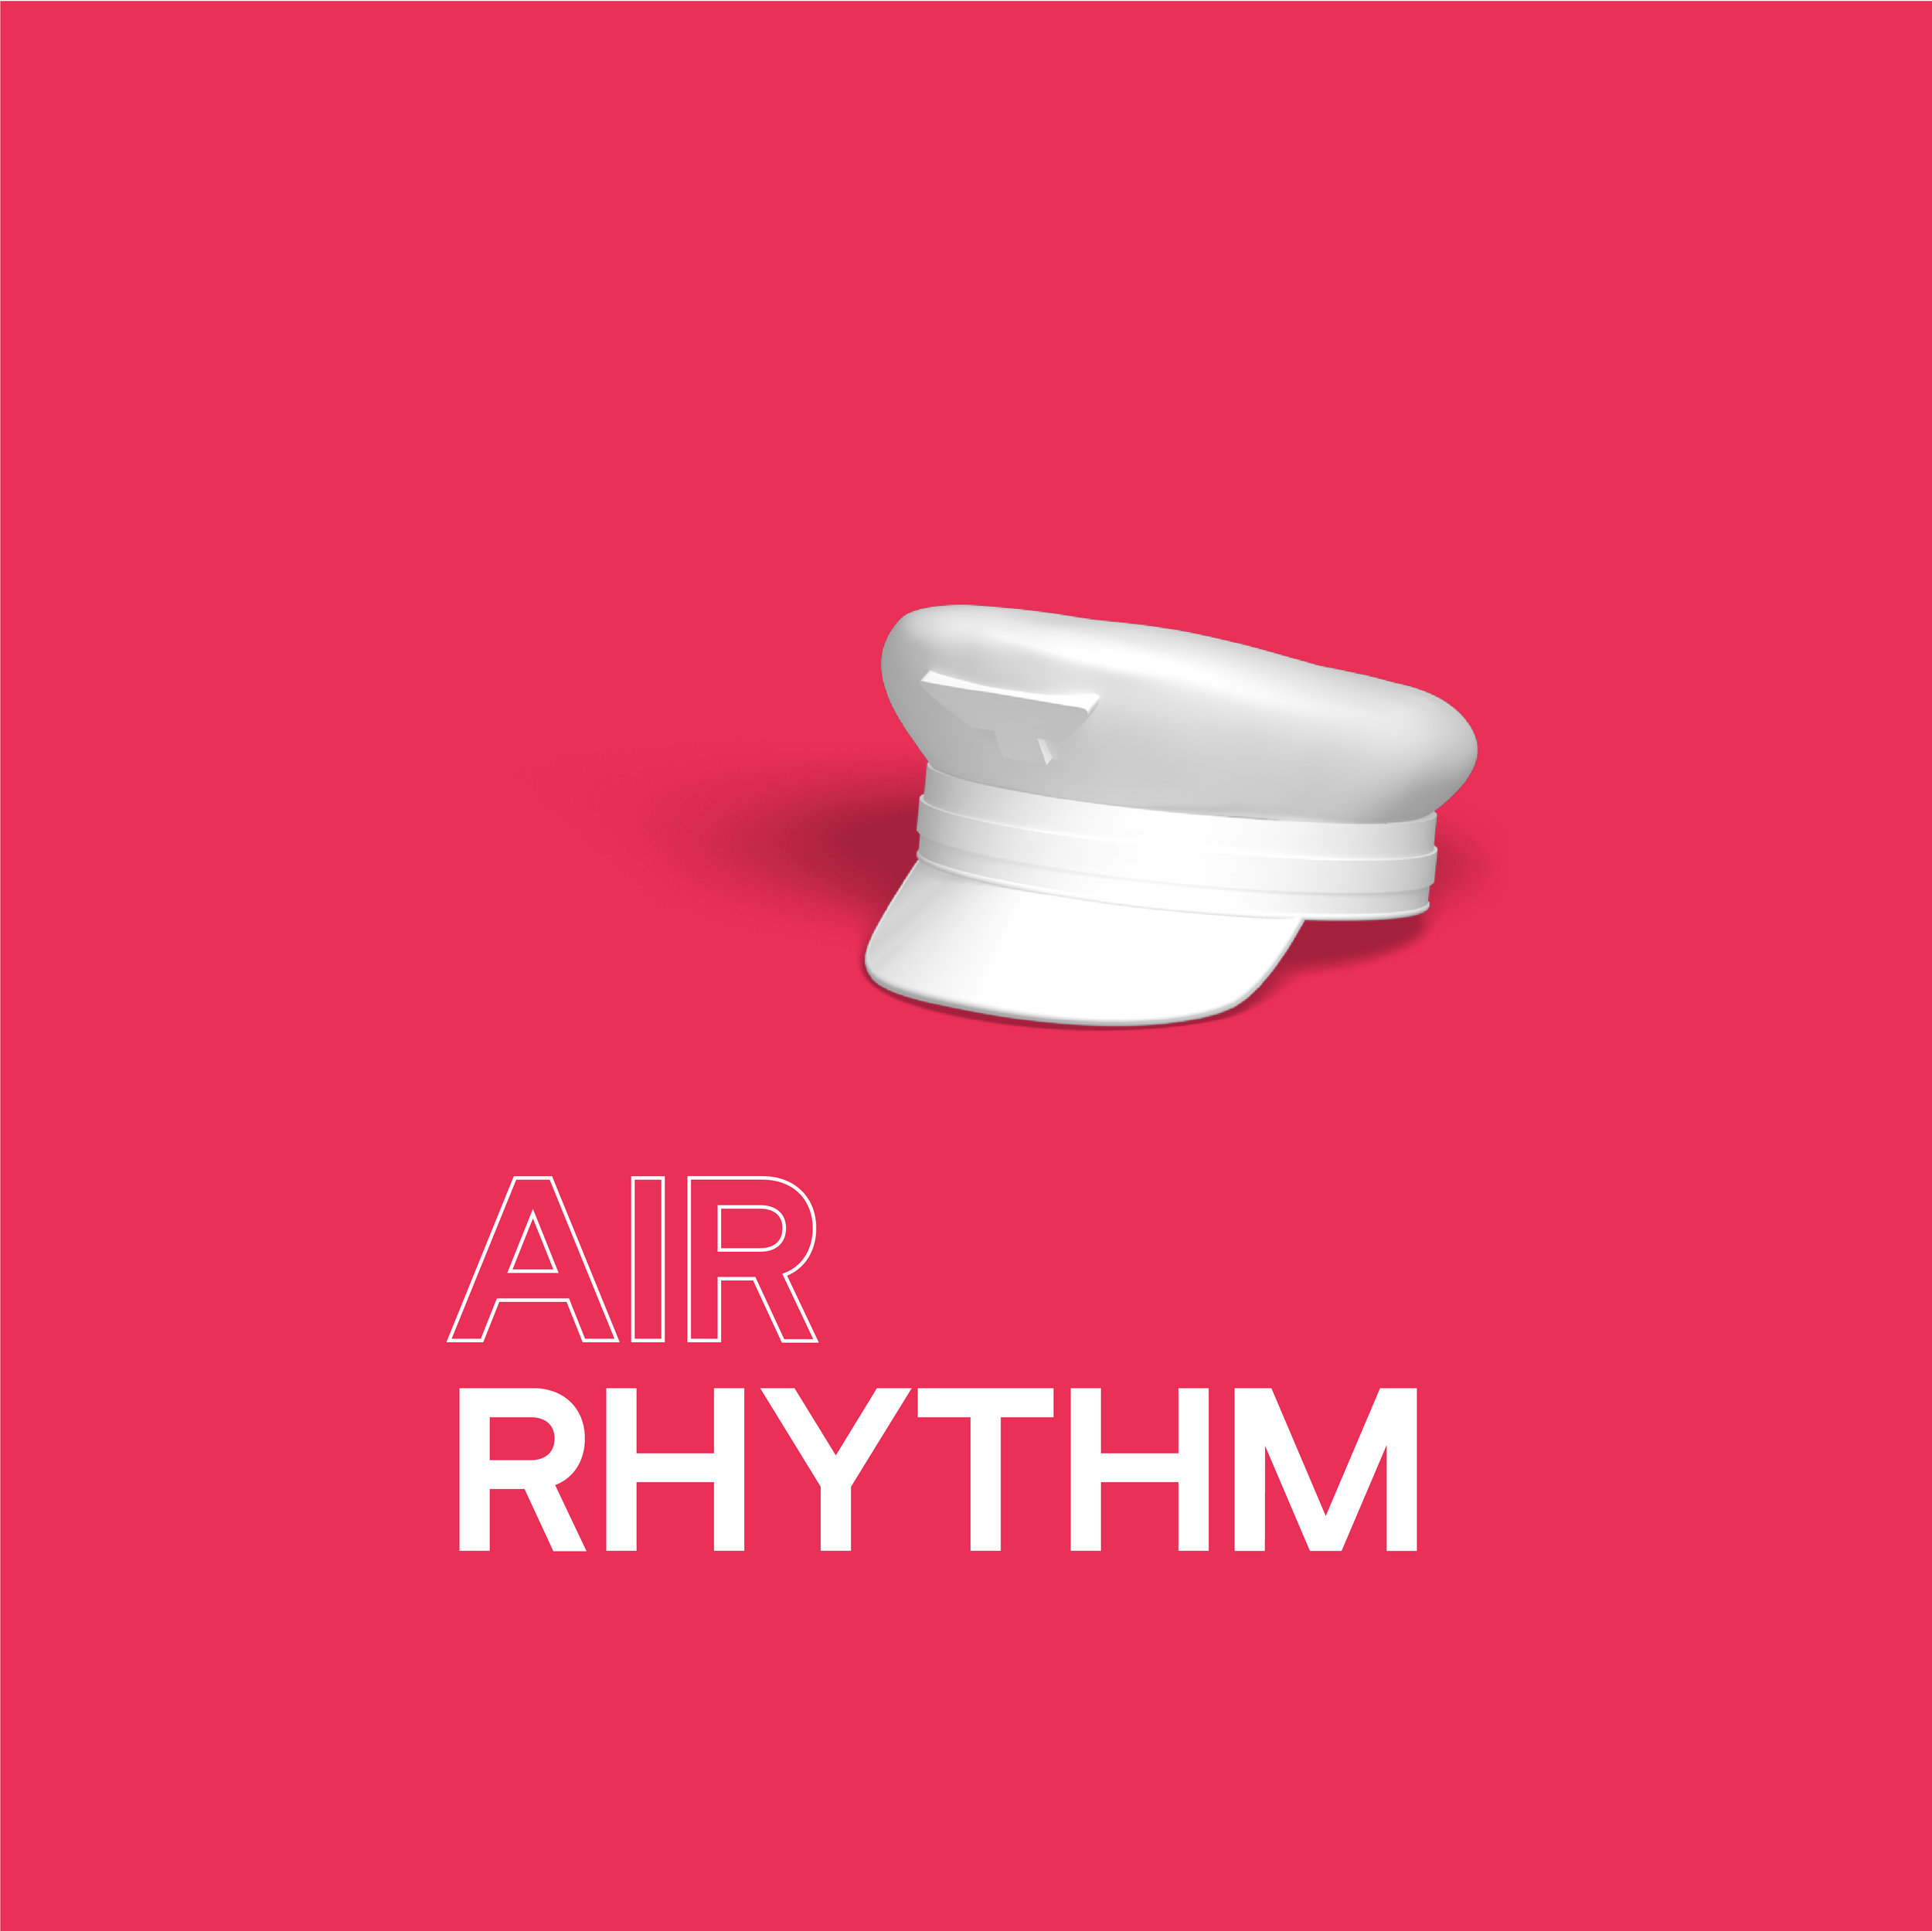 Air rhythm- logo tile-02.jpg